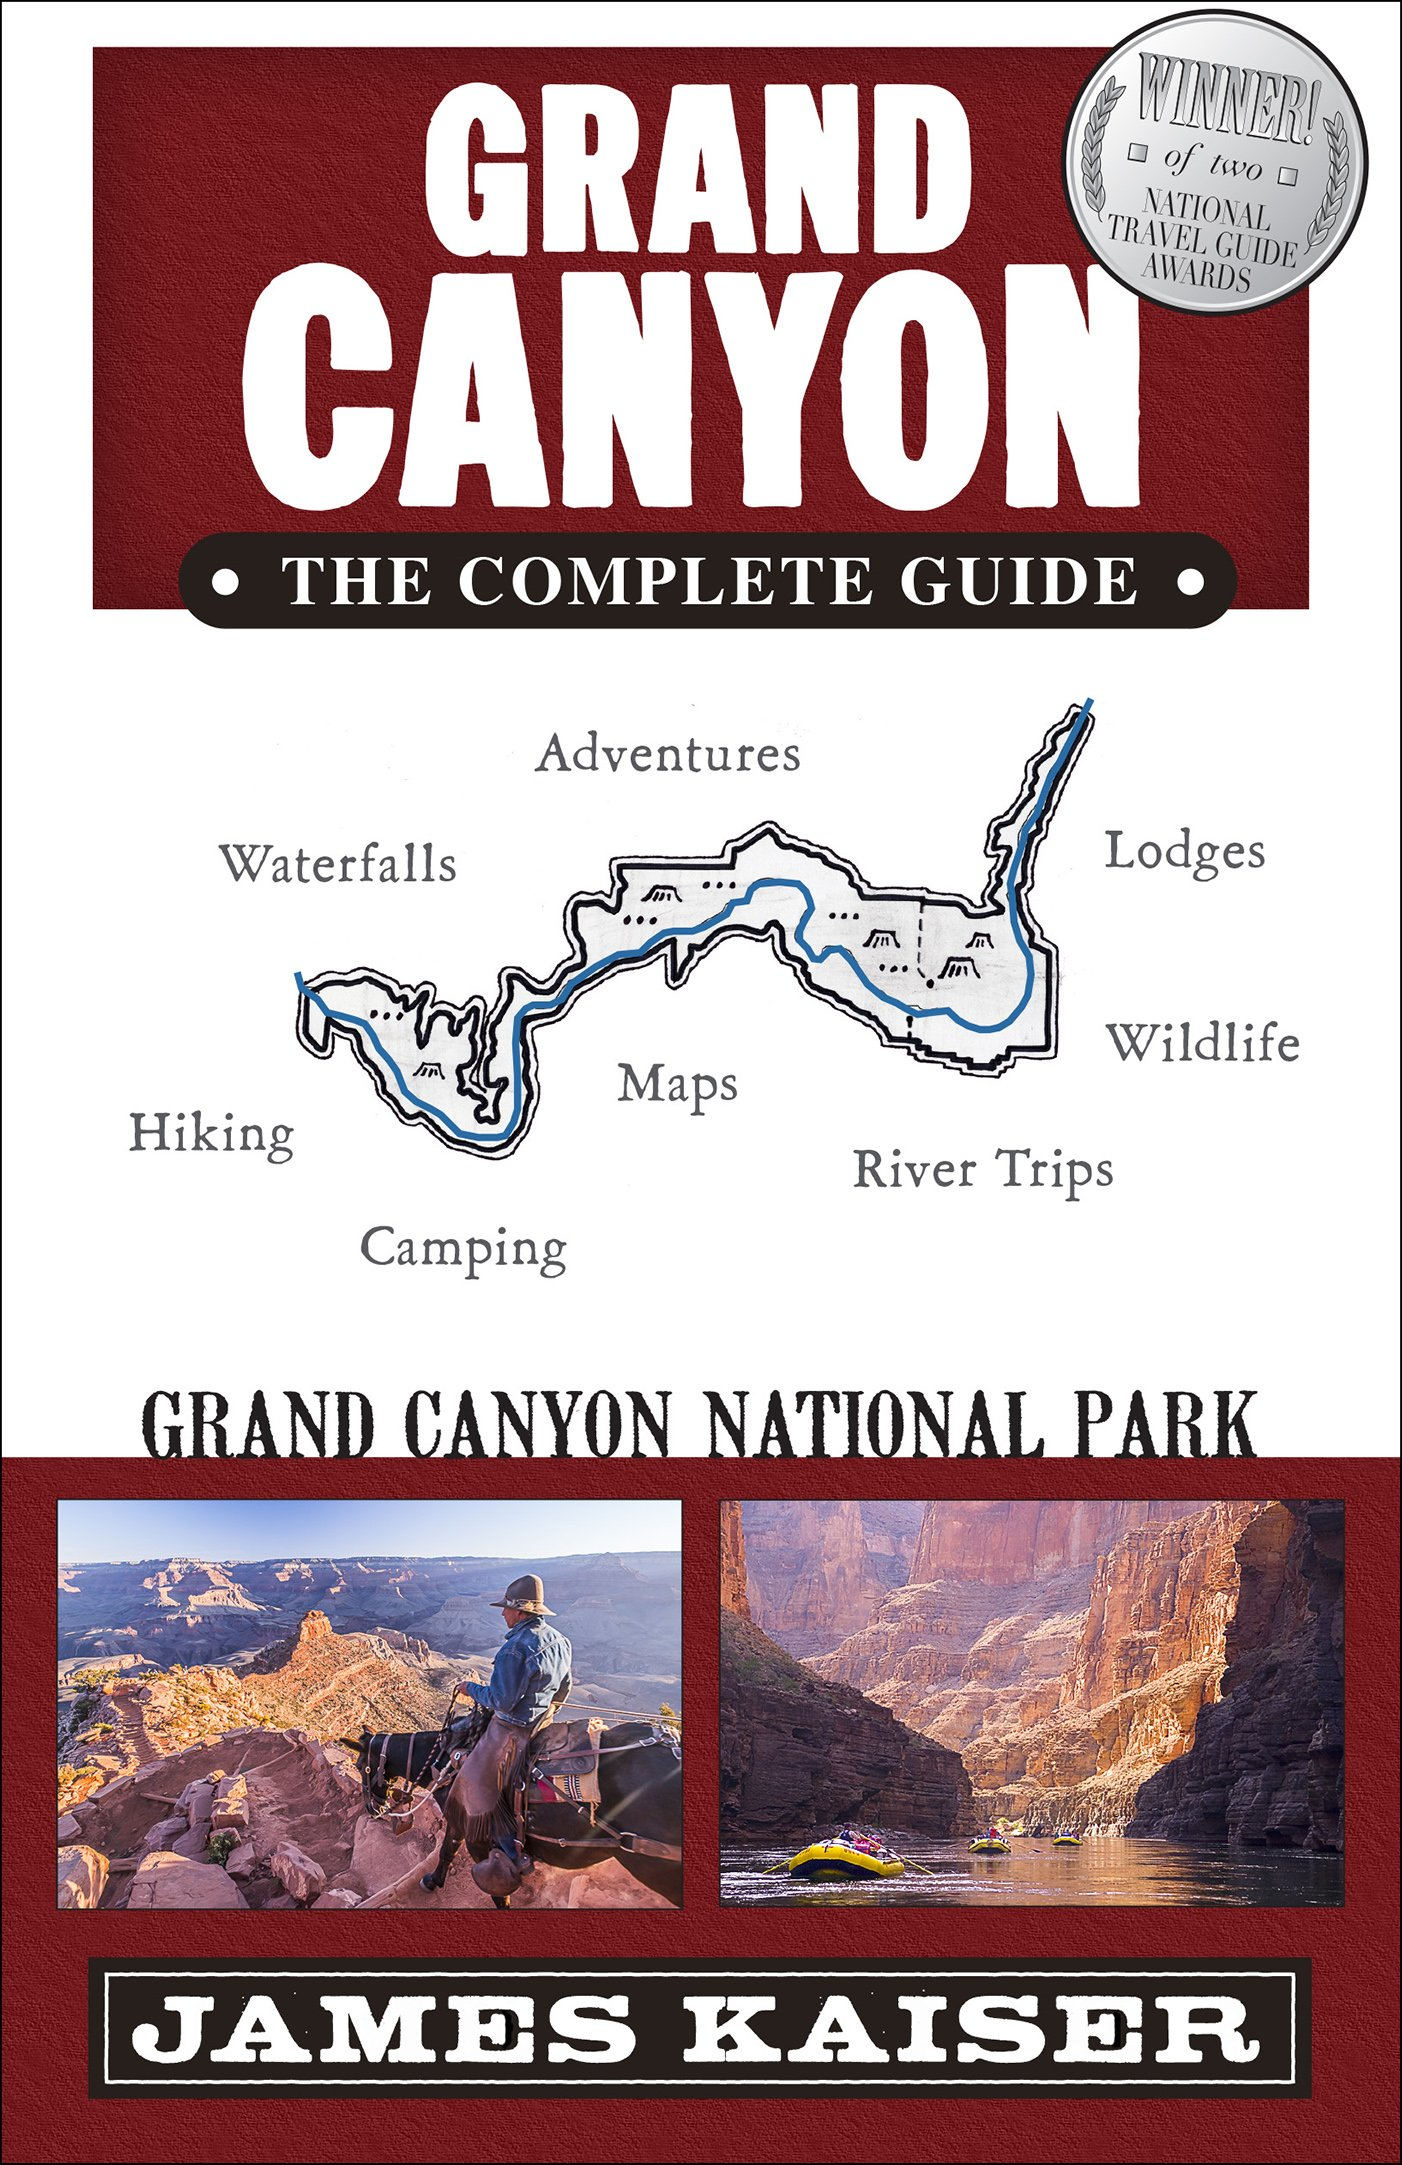 Grand Canyon: The Complete Guide by Destination Press